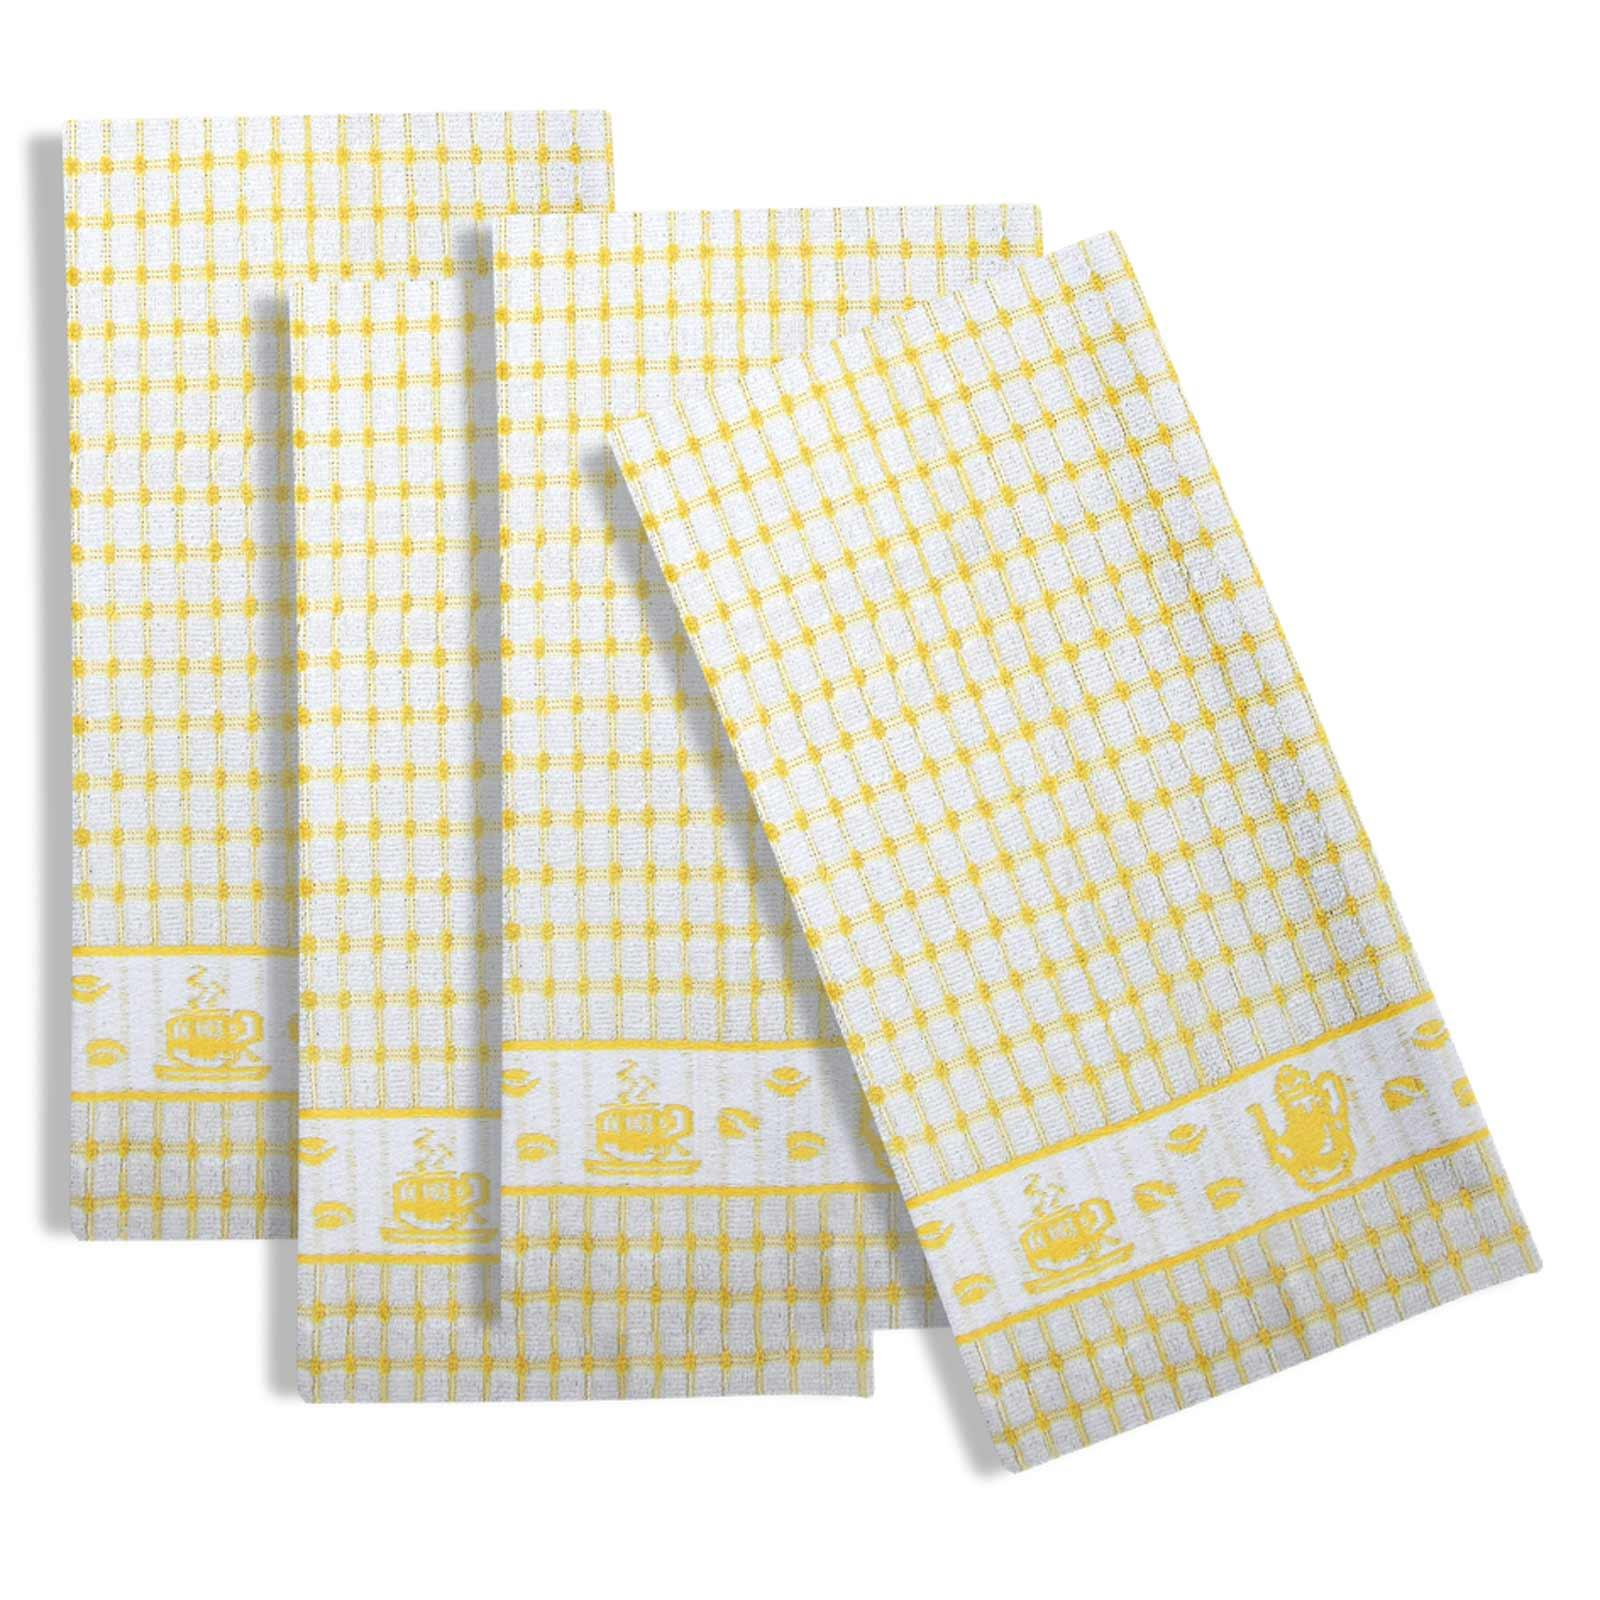 Packs-of-2-4-6-12-Tea-Towels-100-Cotton-Terry-Kitchen-Dish-Drying-Towel-Sets thumbnail 54